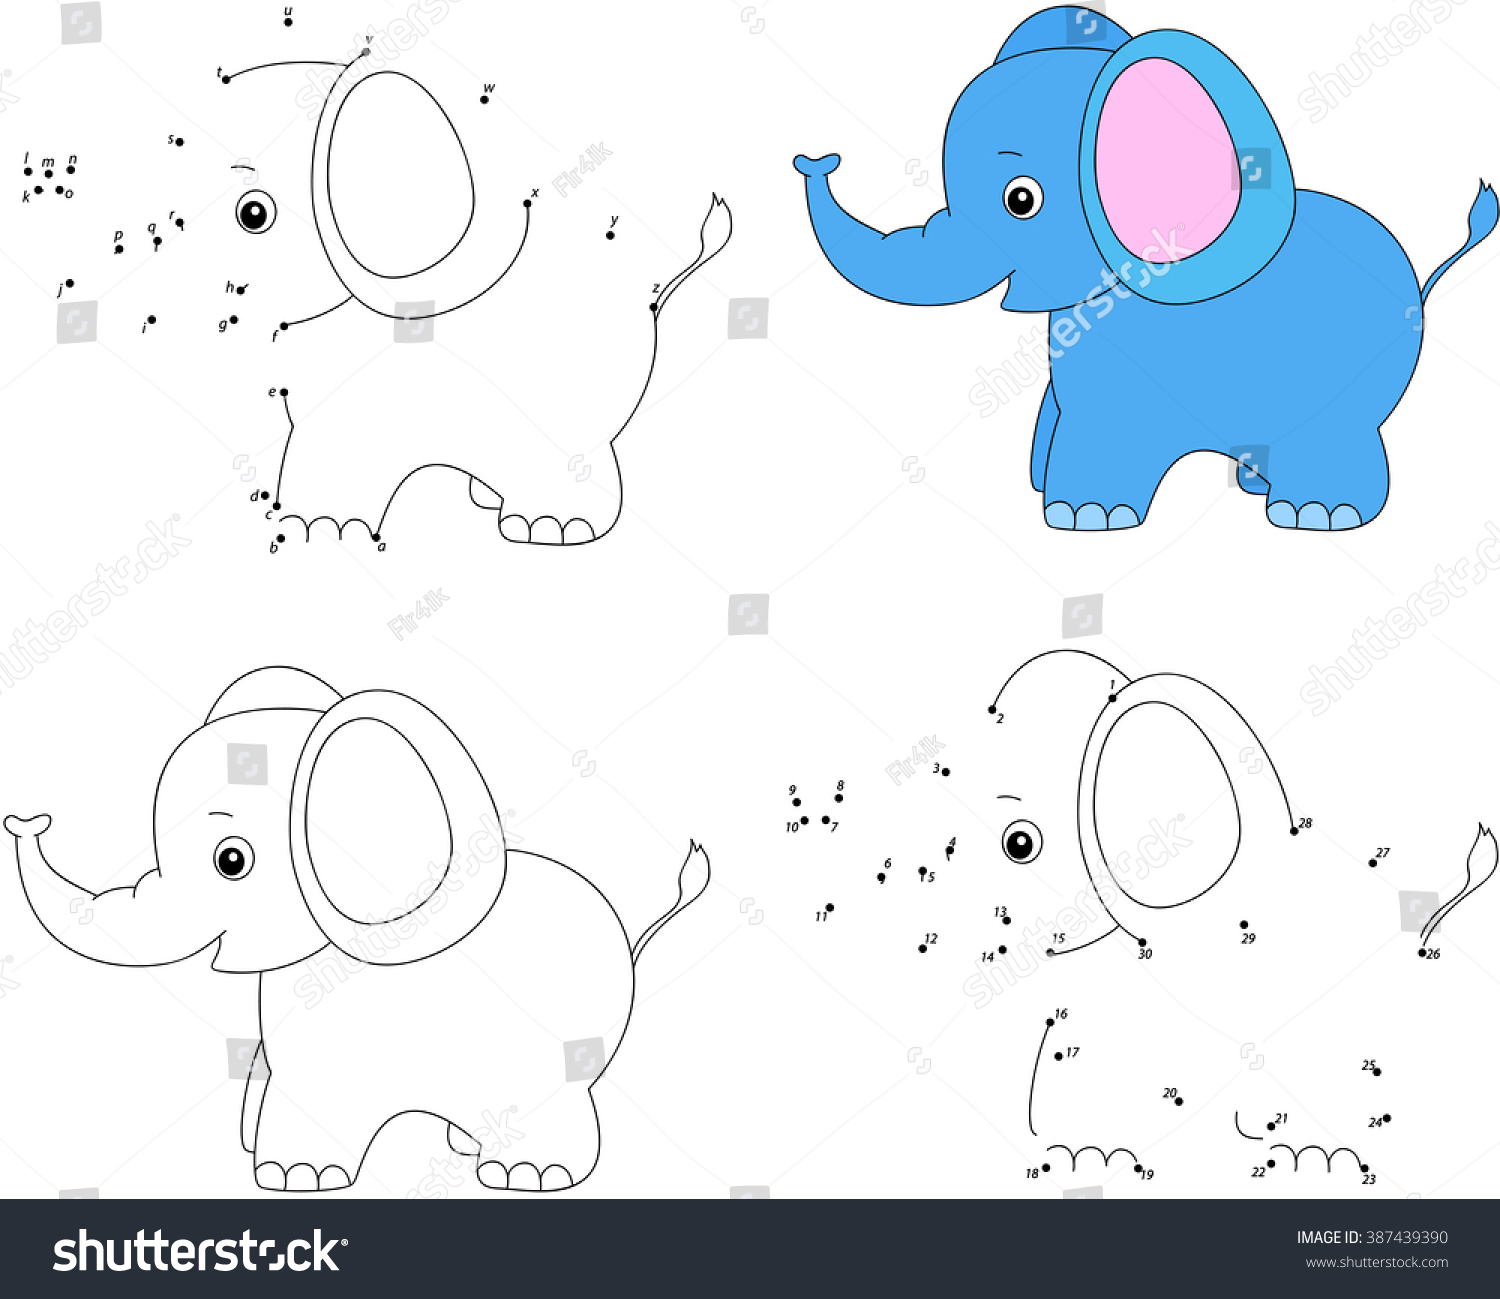 cartoon elephant coloring book and dot to dot educational game for kids - Elephant Coloring Book